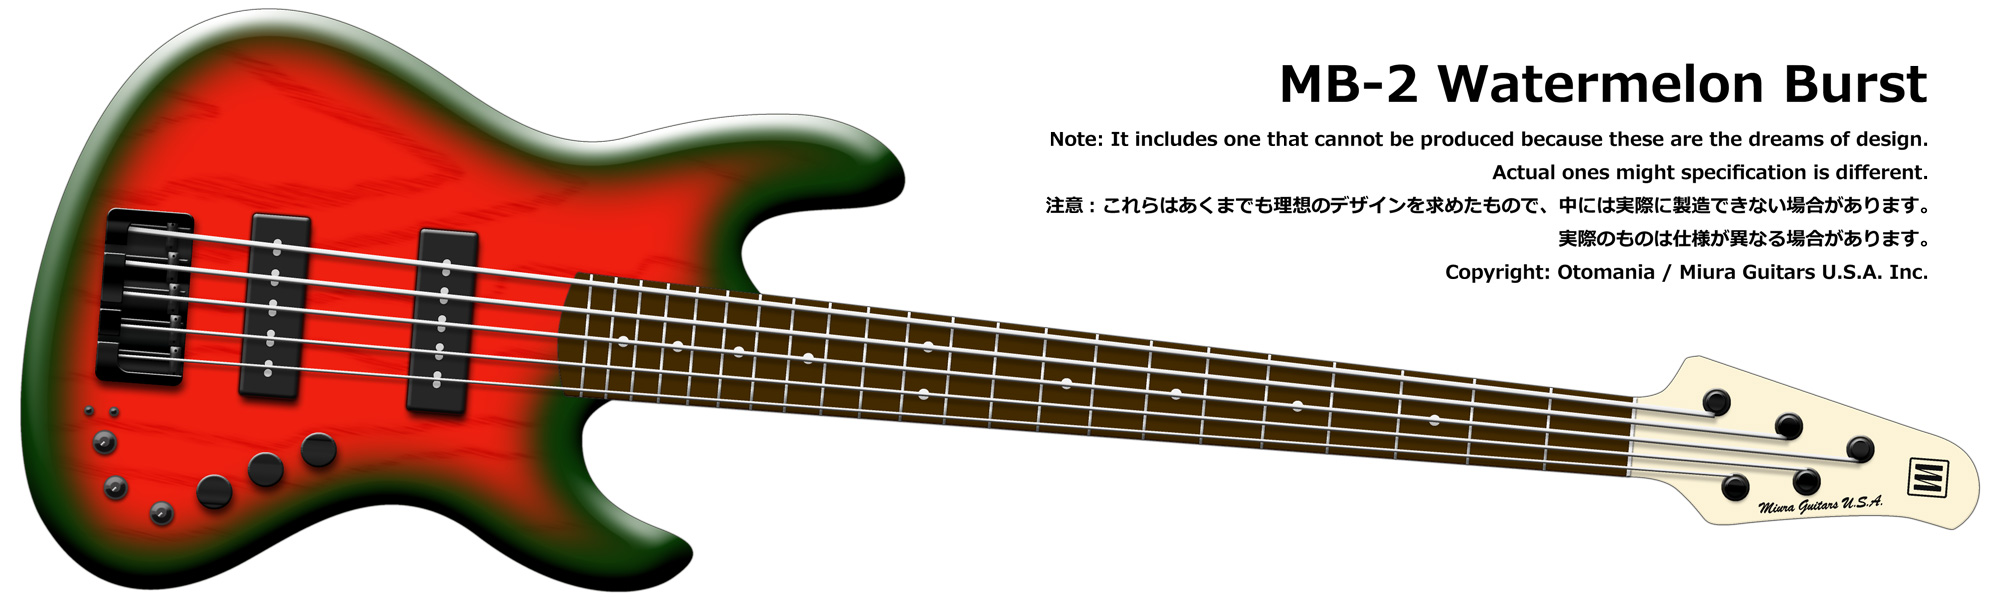 MB-2 Watermelon Burst